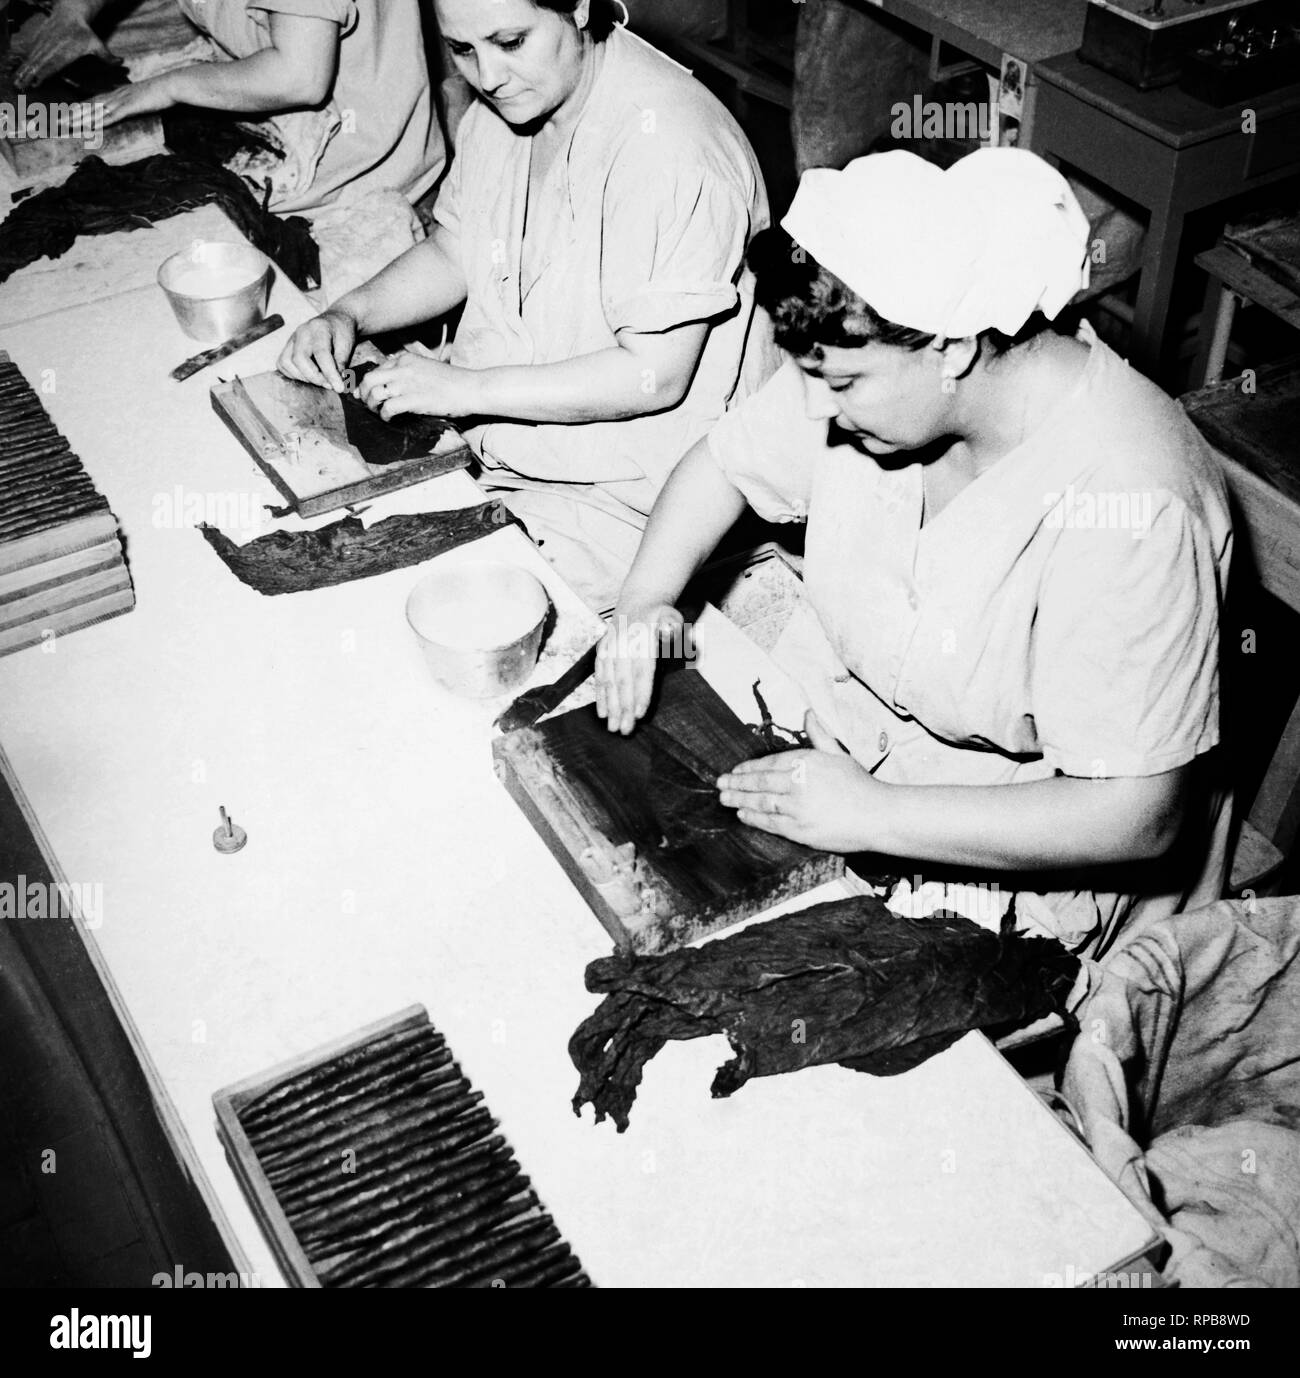 tobacco factory, cigars production, italy 1963 - Stock Image